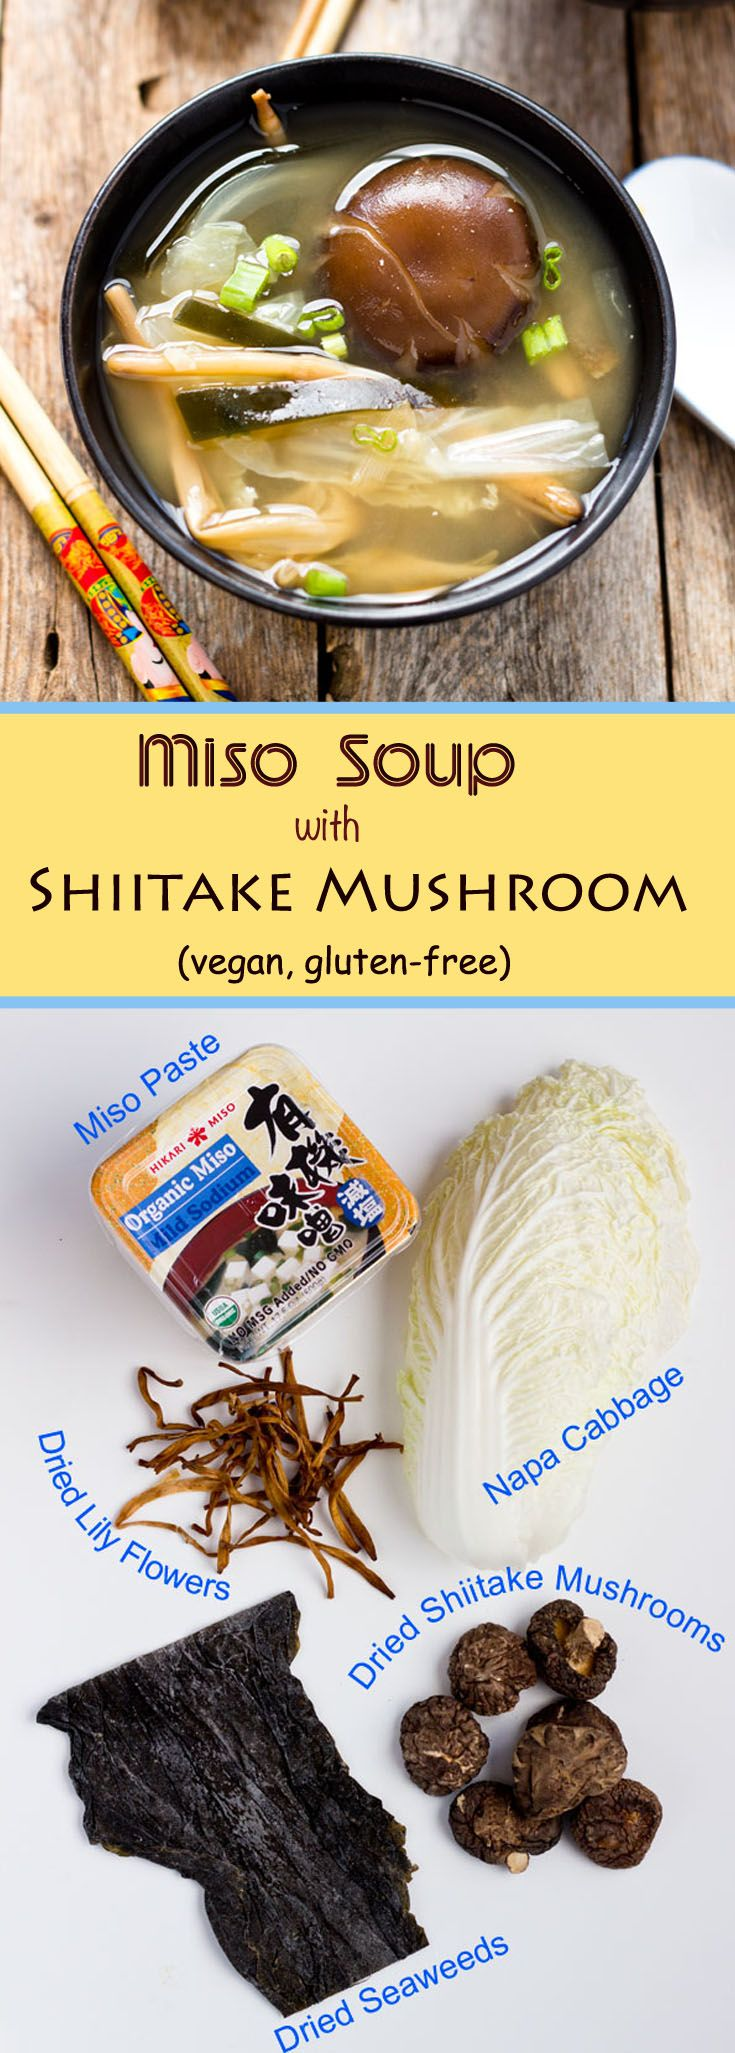 This vegan, gluten-free miso soup is using a homemade shiitake mushroom and kumbo kelp dashi as the base. The flavor is complete and complex. via @lightorangebean